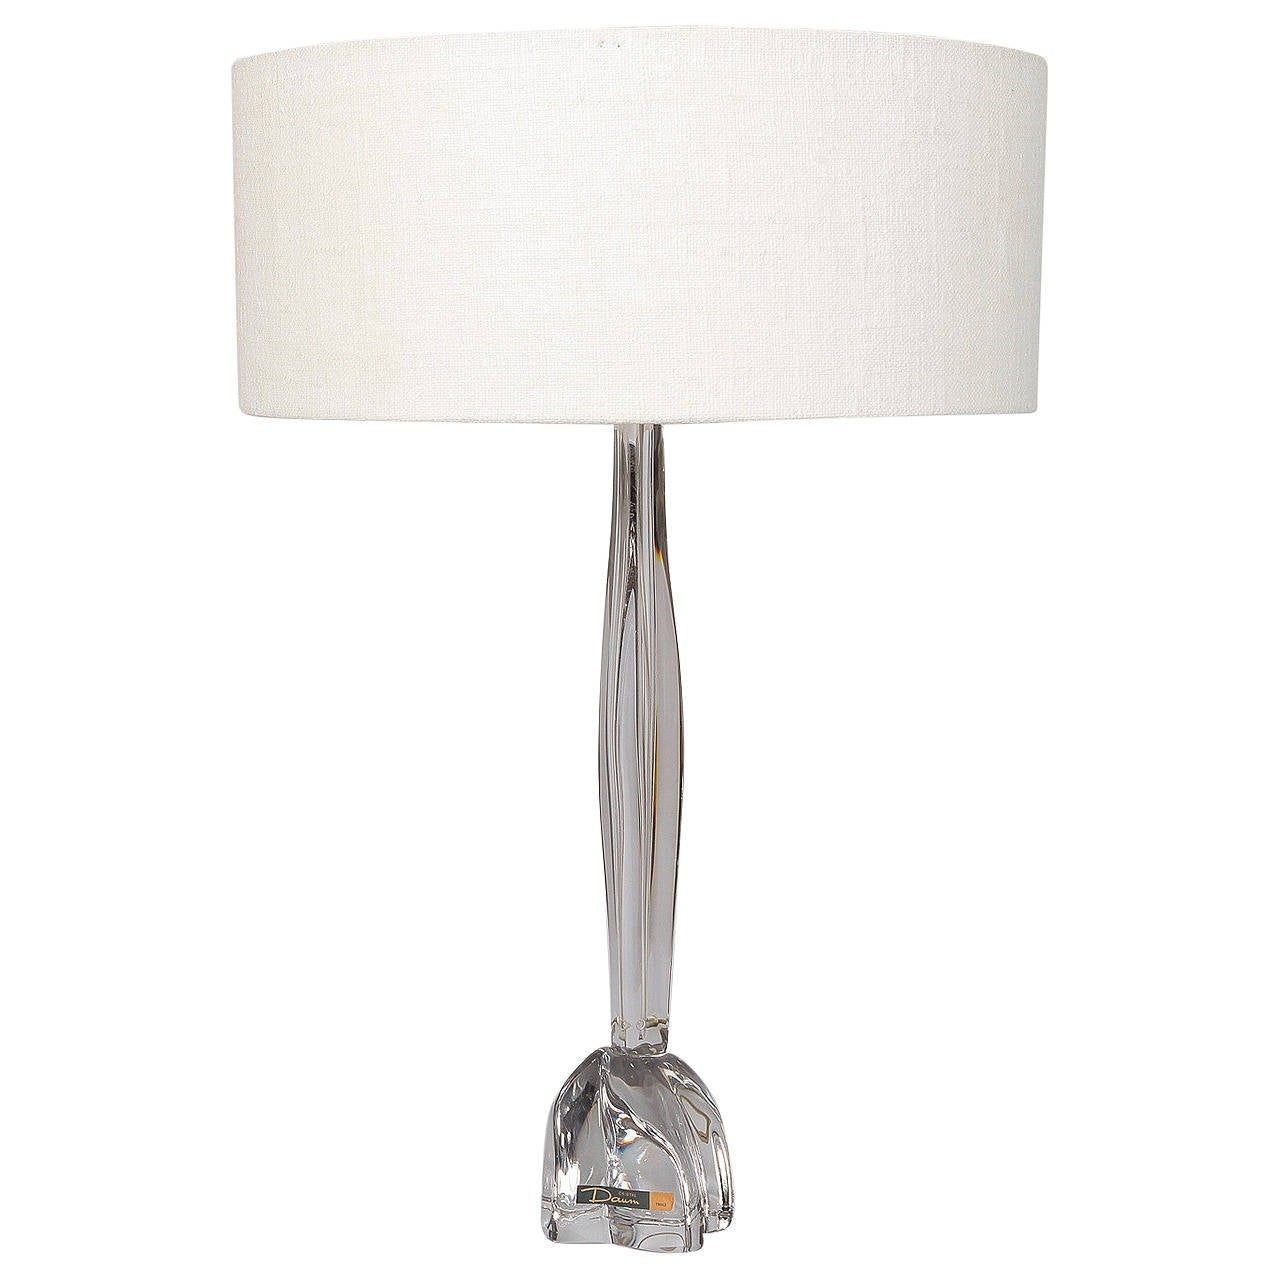 tall mid century daum clear glass table lamp with shade for sale at. Black Bedroom Furniture Sets. Home Design Ideas